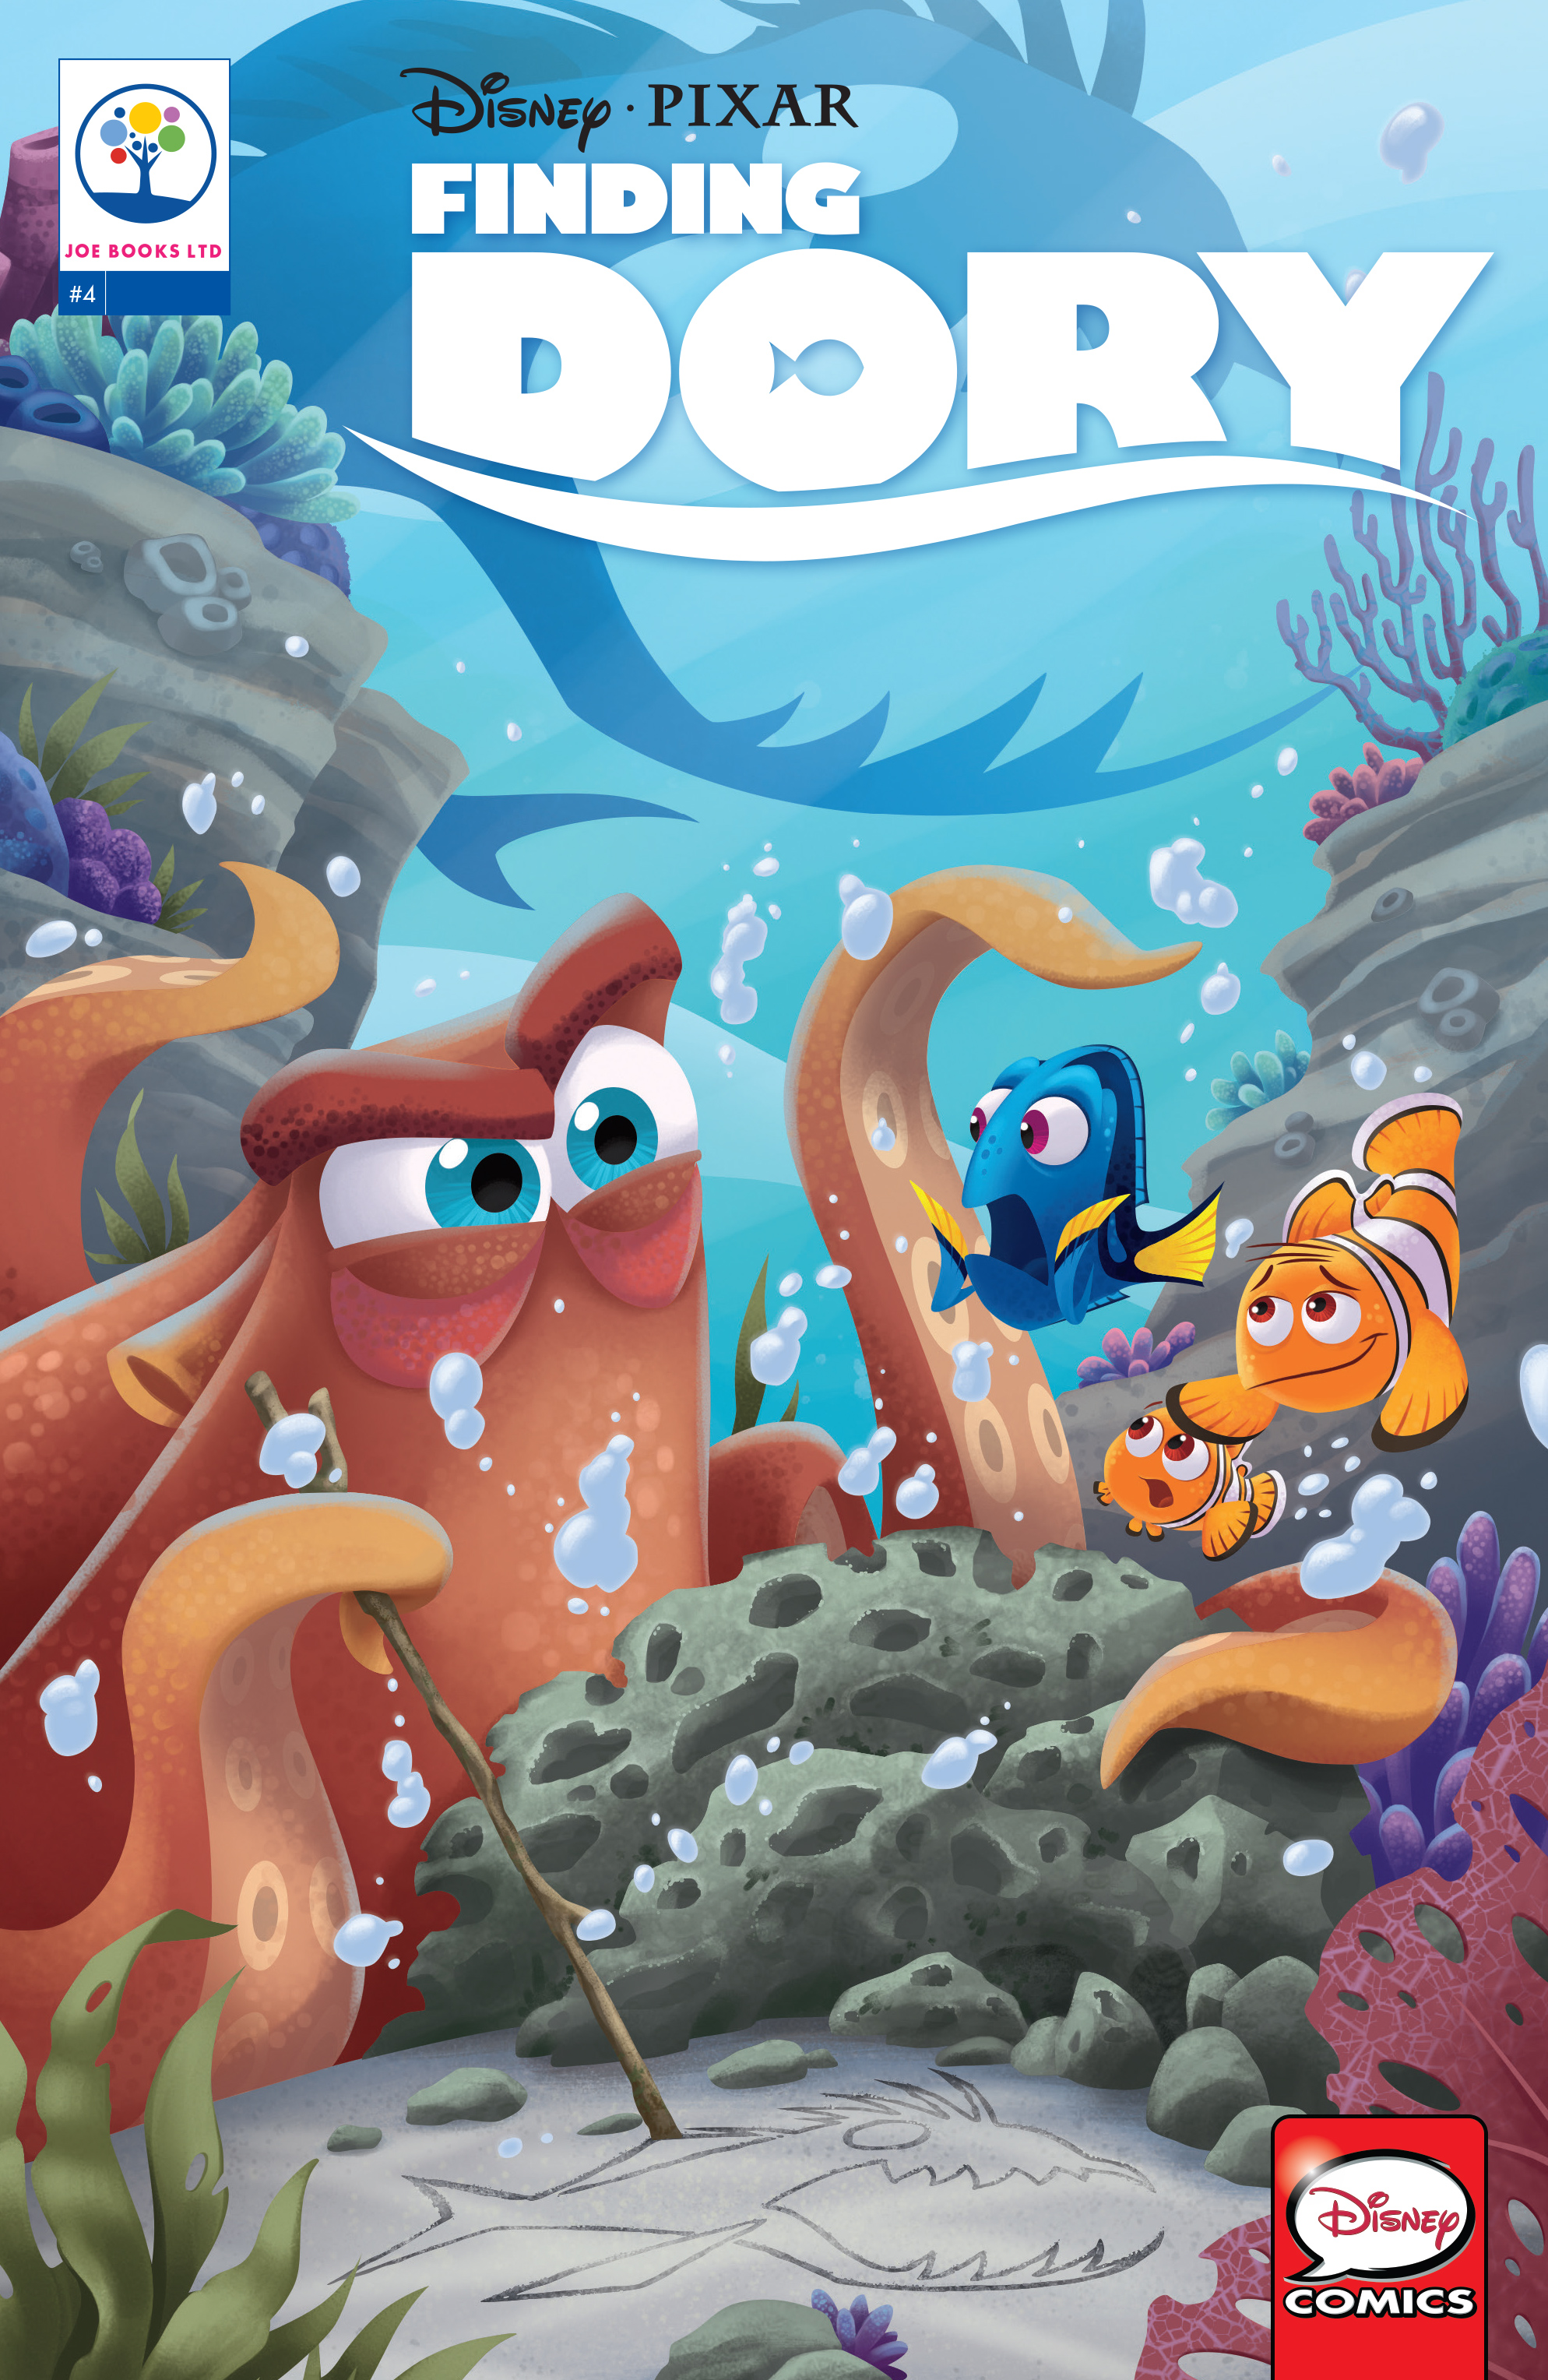 Read online Disney Pixar Finding Dory comic -  Issue #4 - 1